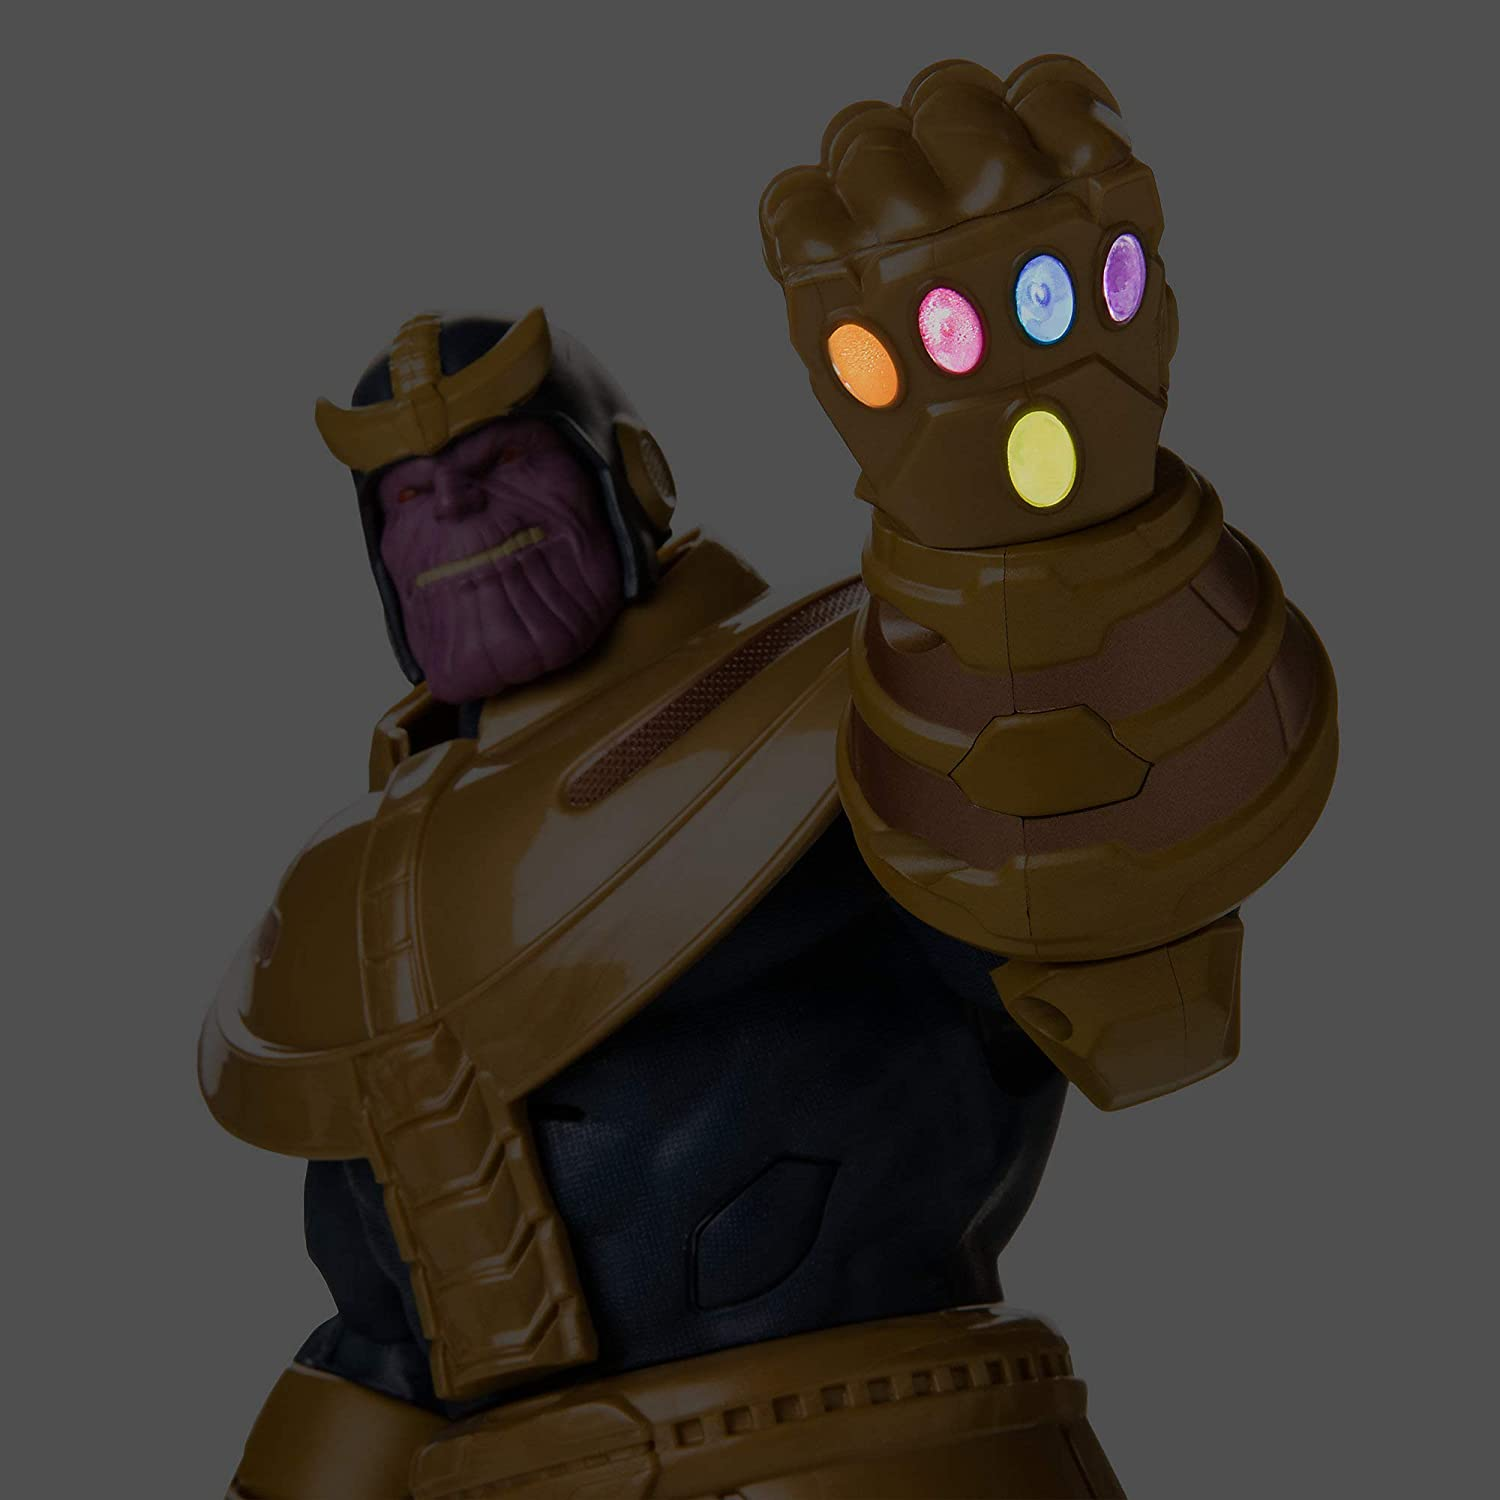 Disney Marvel Avengers Thanos Talking Action Figure